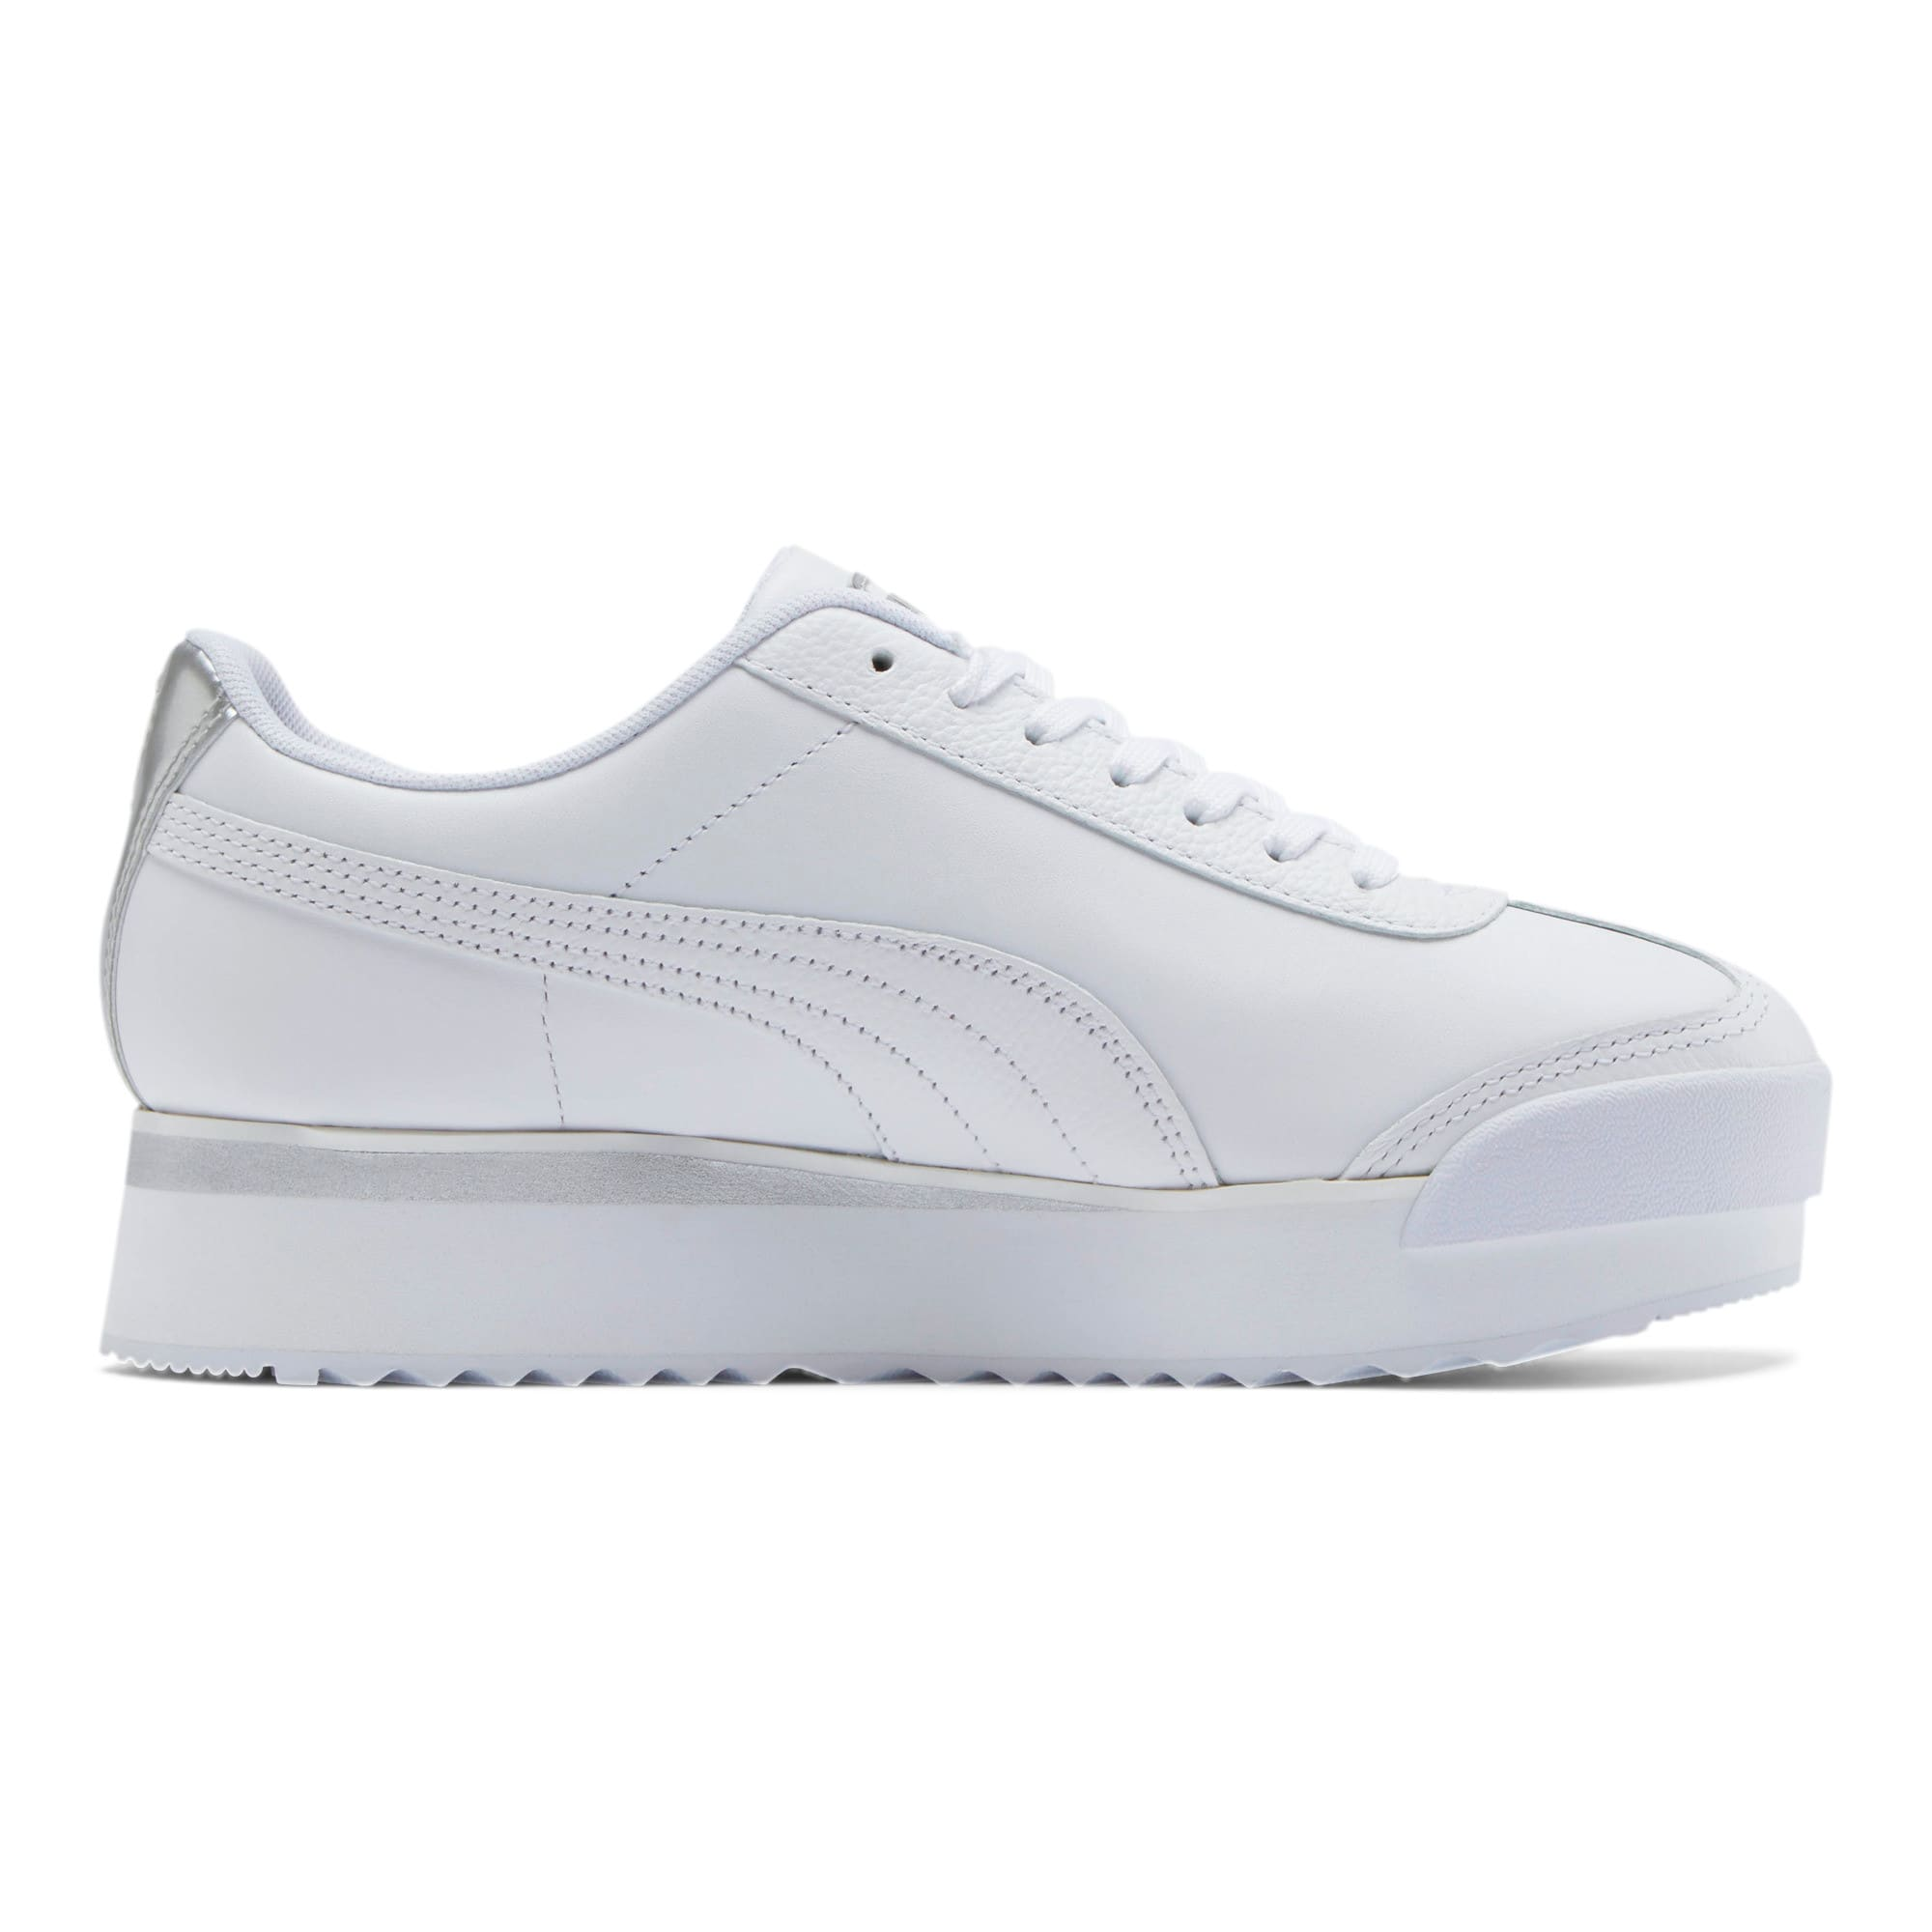 Thumbnail 5 of Roma Amor Leather Metallic Women's Sneakers, White-Whisper White-Silver, medium